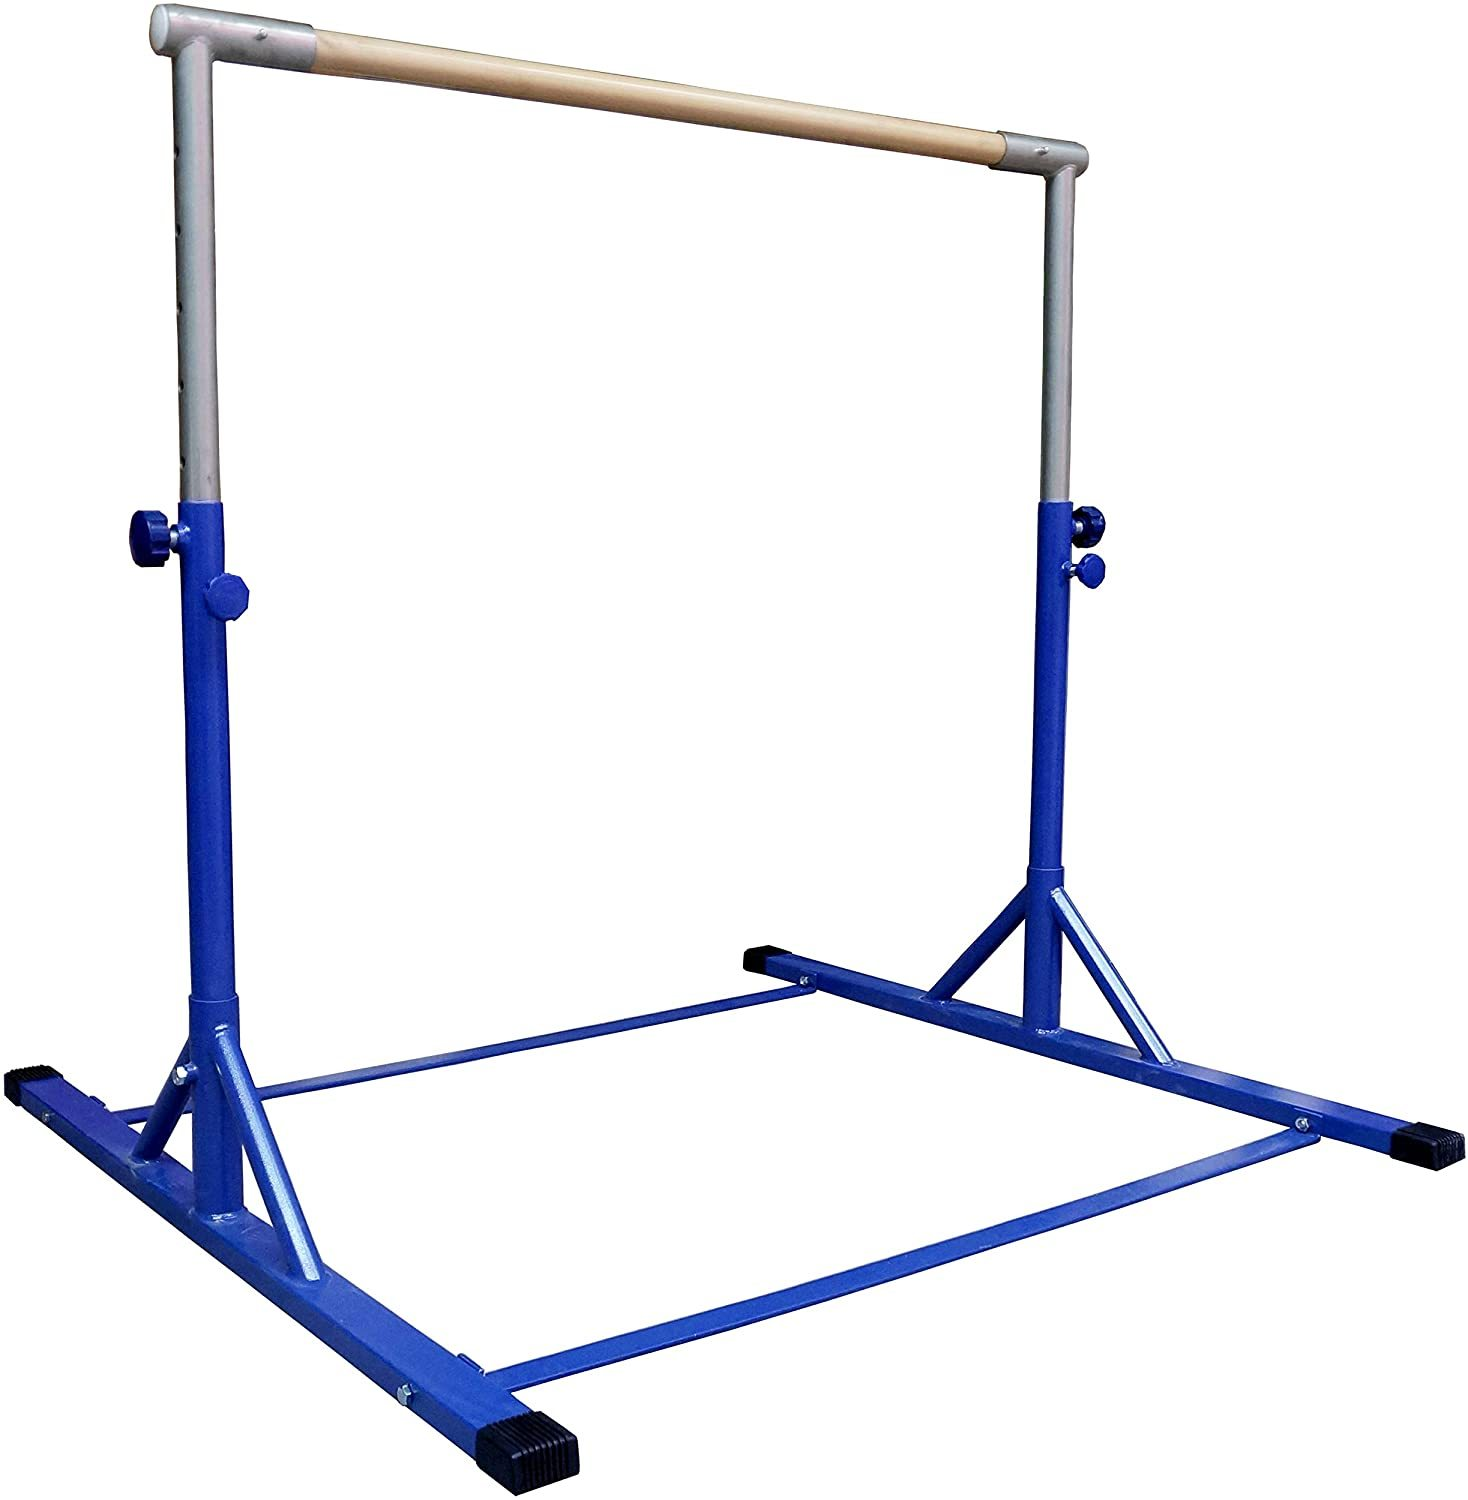 Gymnastics Expandable Kip Bar